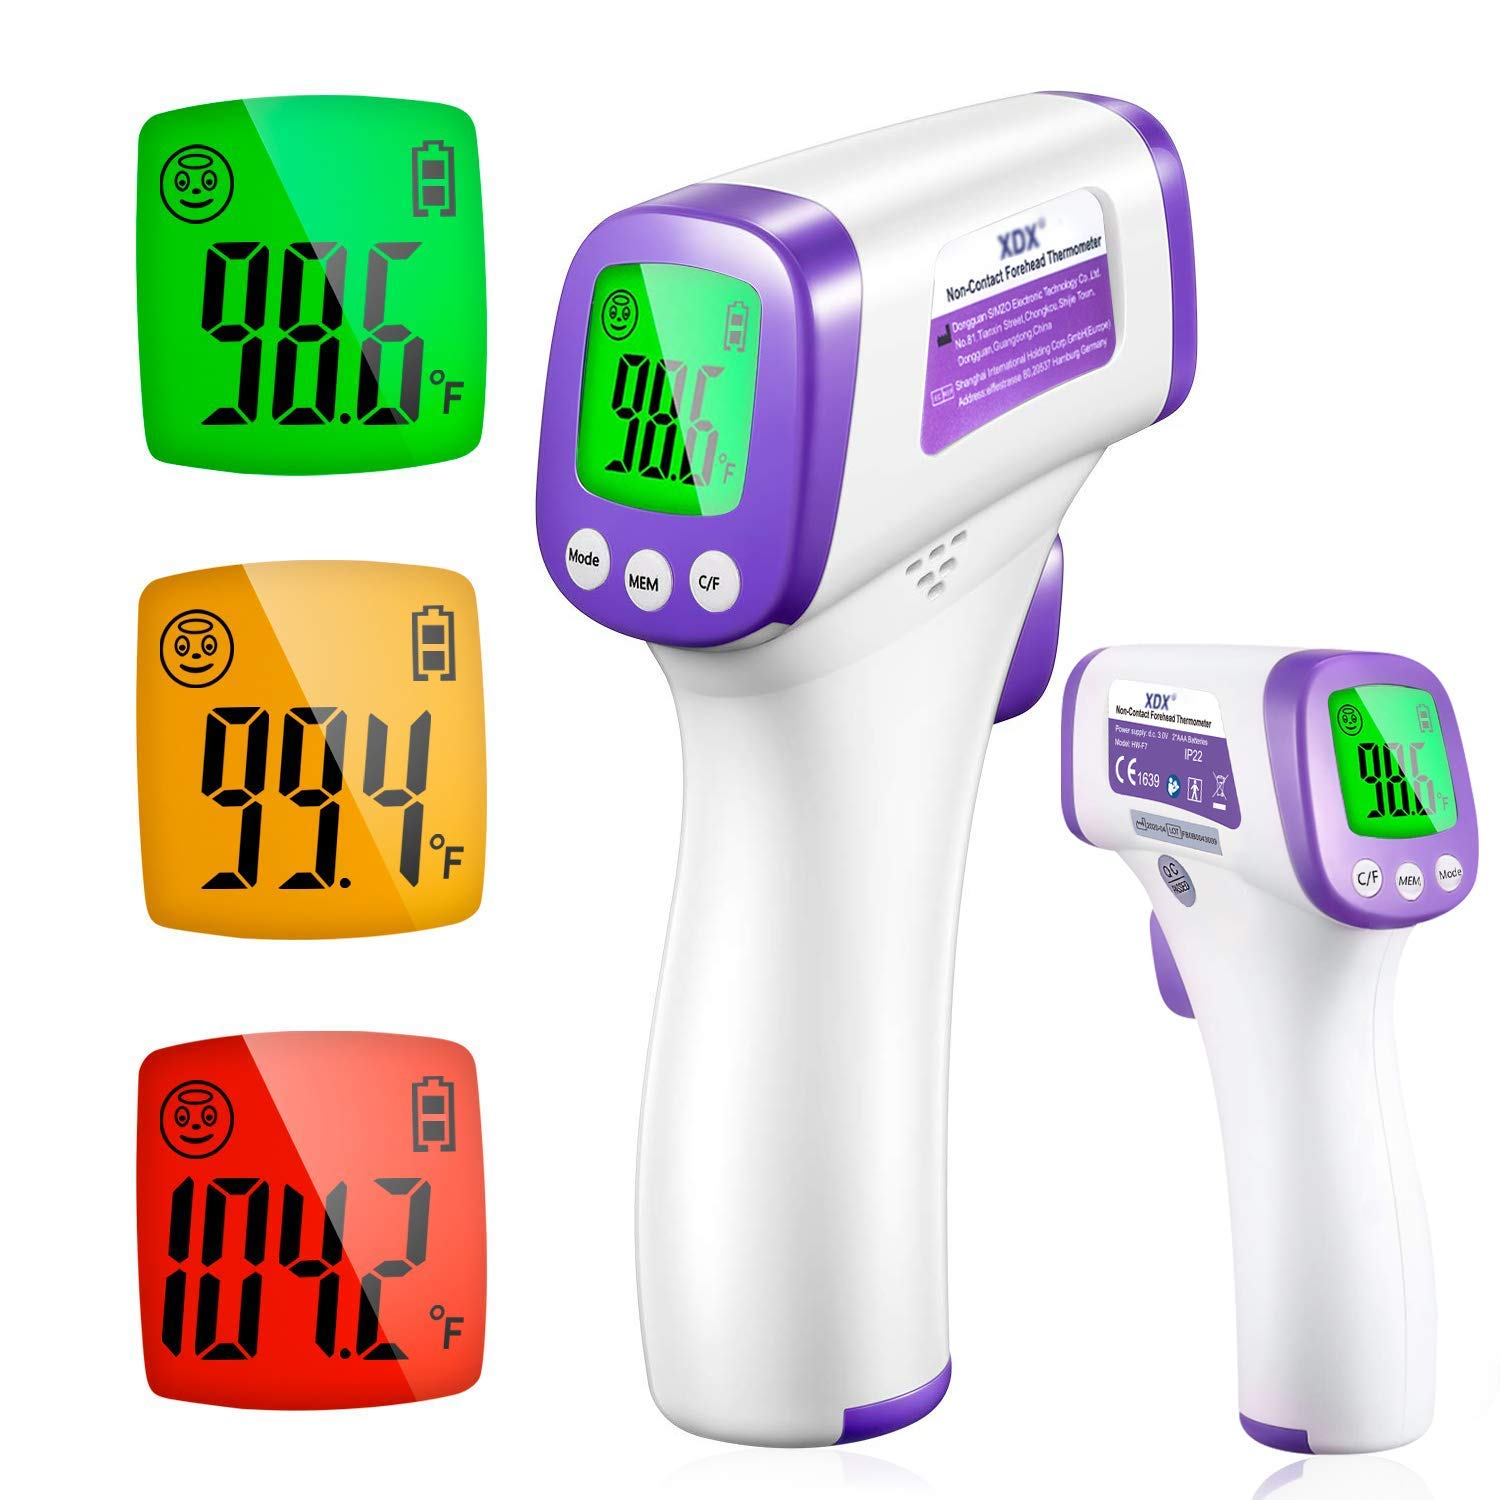 XDX Non Contact Infrared Forehead Digital Thermometer $6.99 Coupon